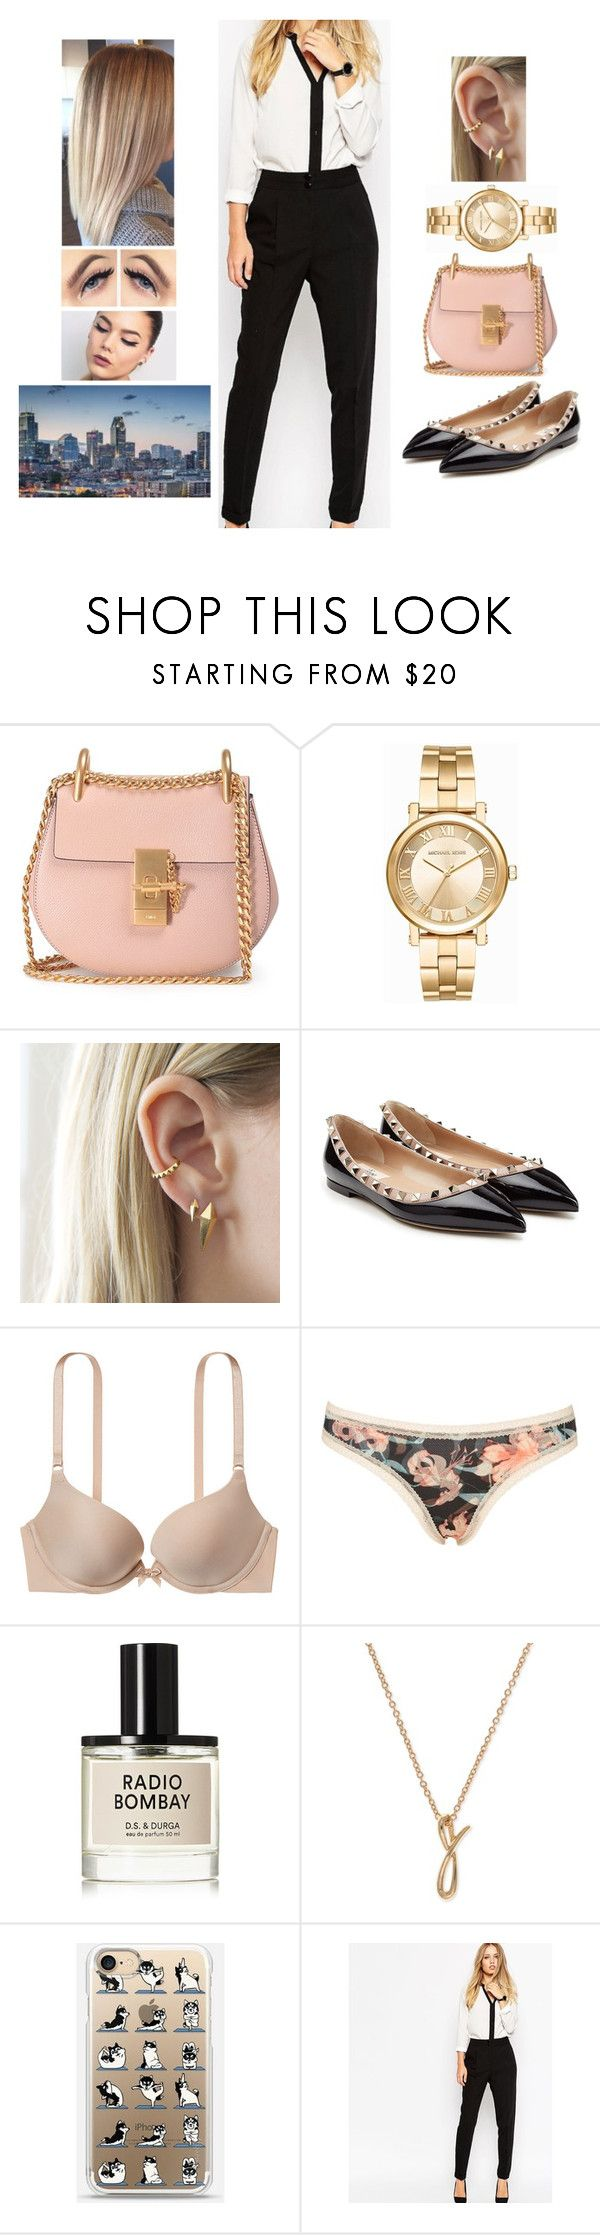 """Travelling to Montréal, Canada (2) 🇨🇦"" by teodoramaria98 ❤ liked on Polyvore featuring Chloé, Michael Kors, Valentino, Victoria's Secret, Calvin Klein, D.S. & DURGA, Anne Klein and Fashion Union"